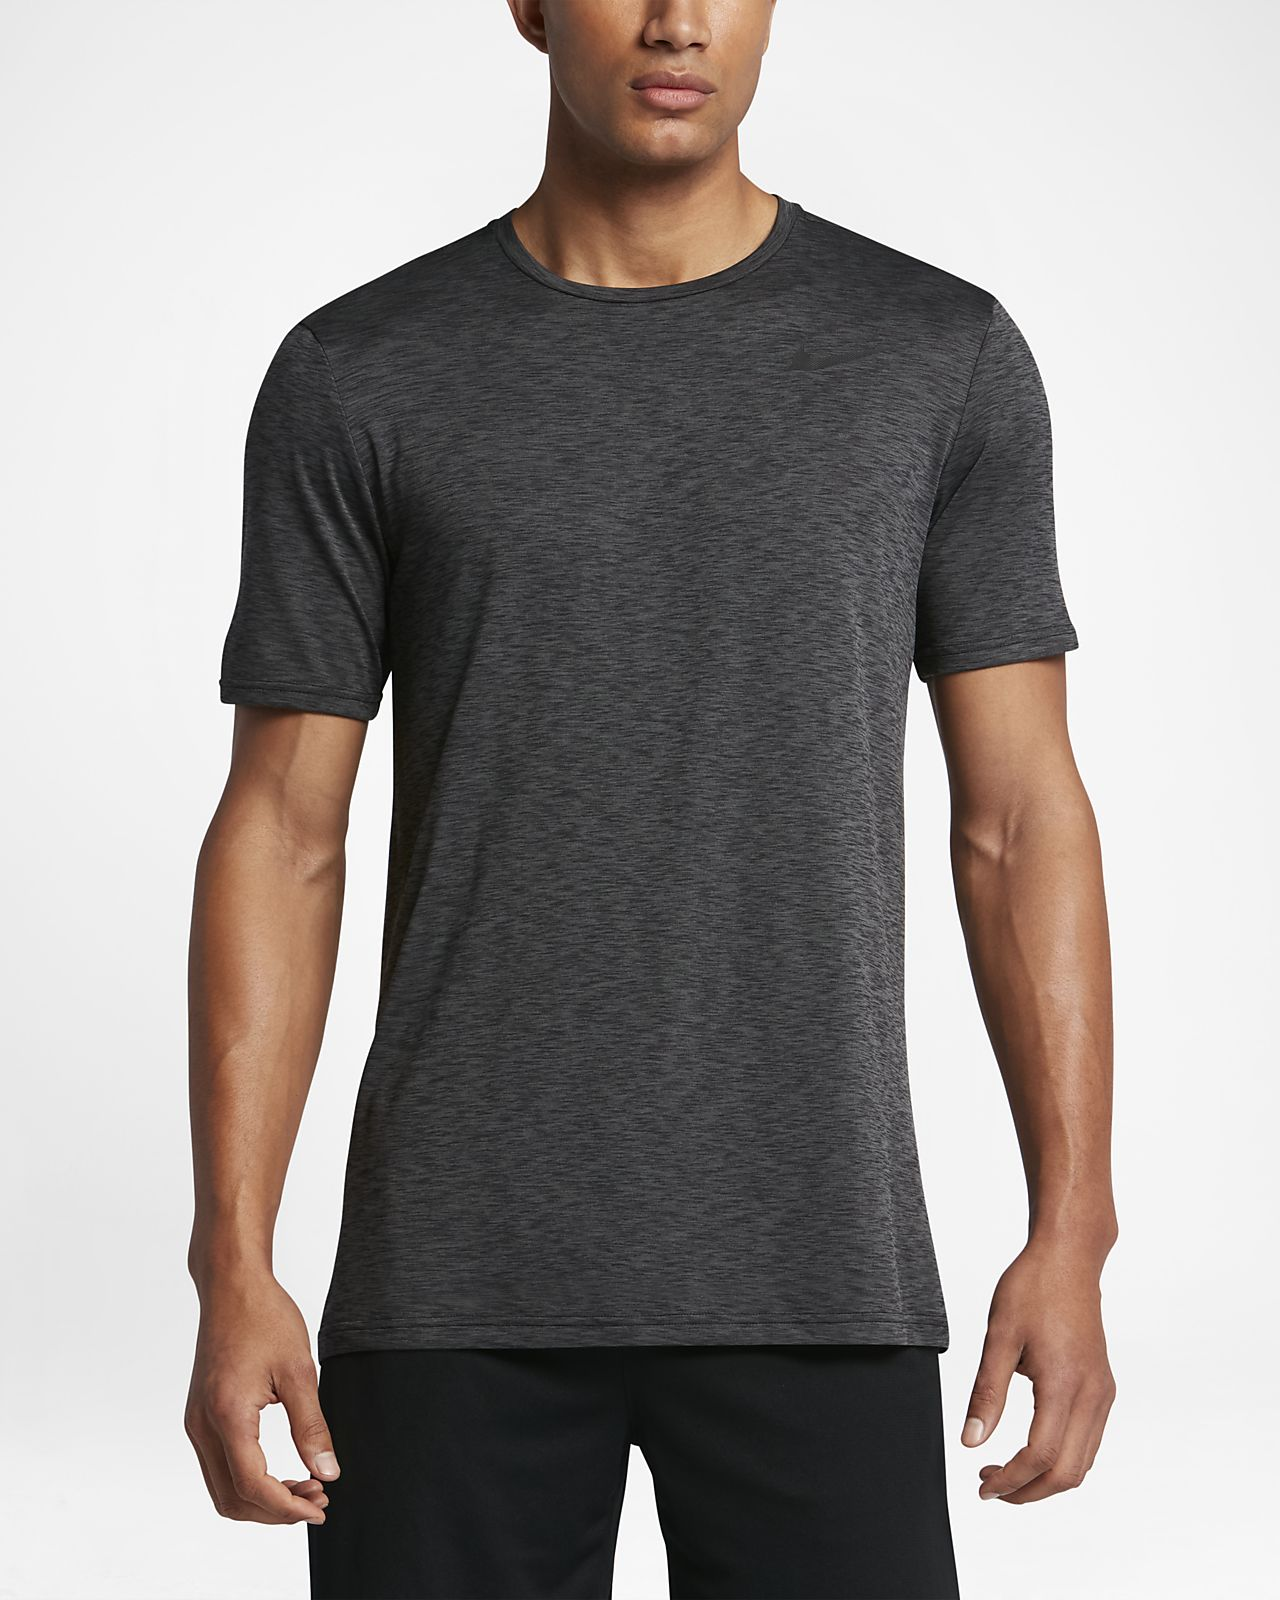 fba297b1e77b7 Nike Breathe Men's Short-Sleeve Training Top. Nike.com BE